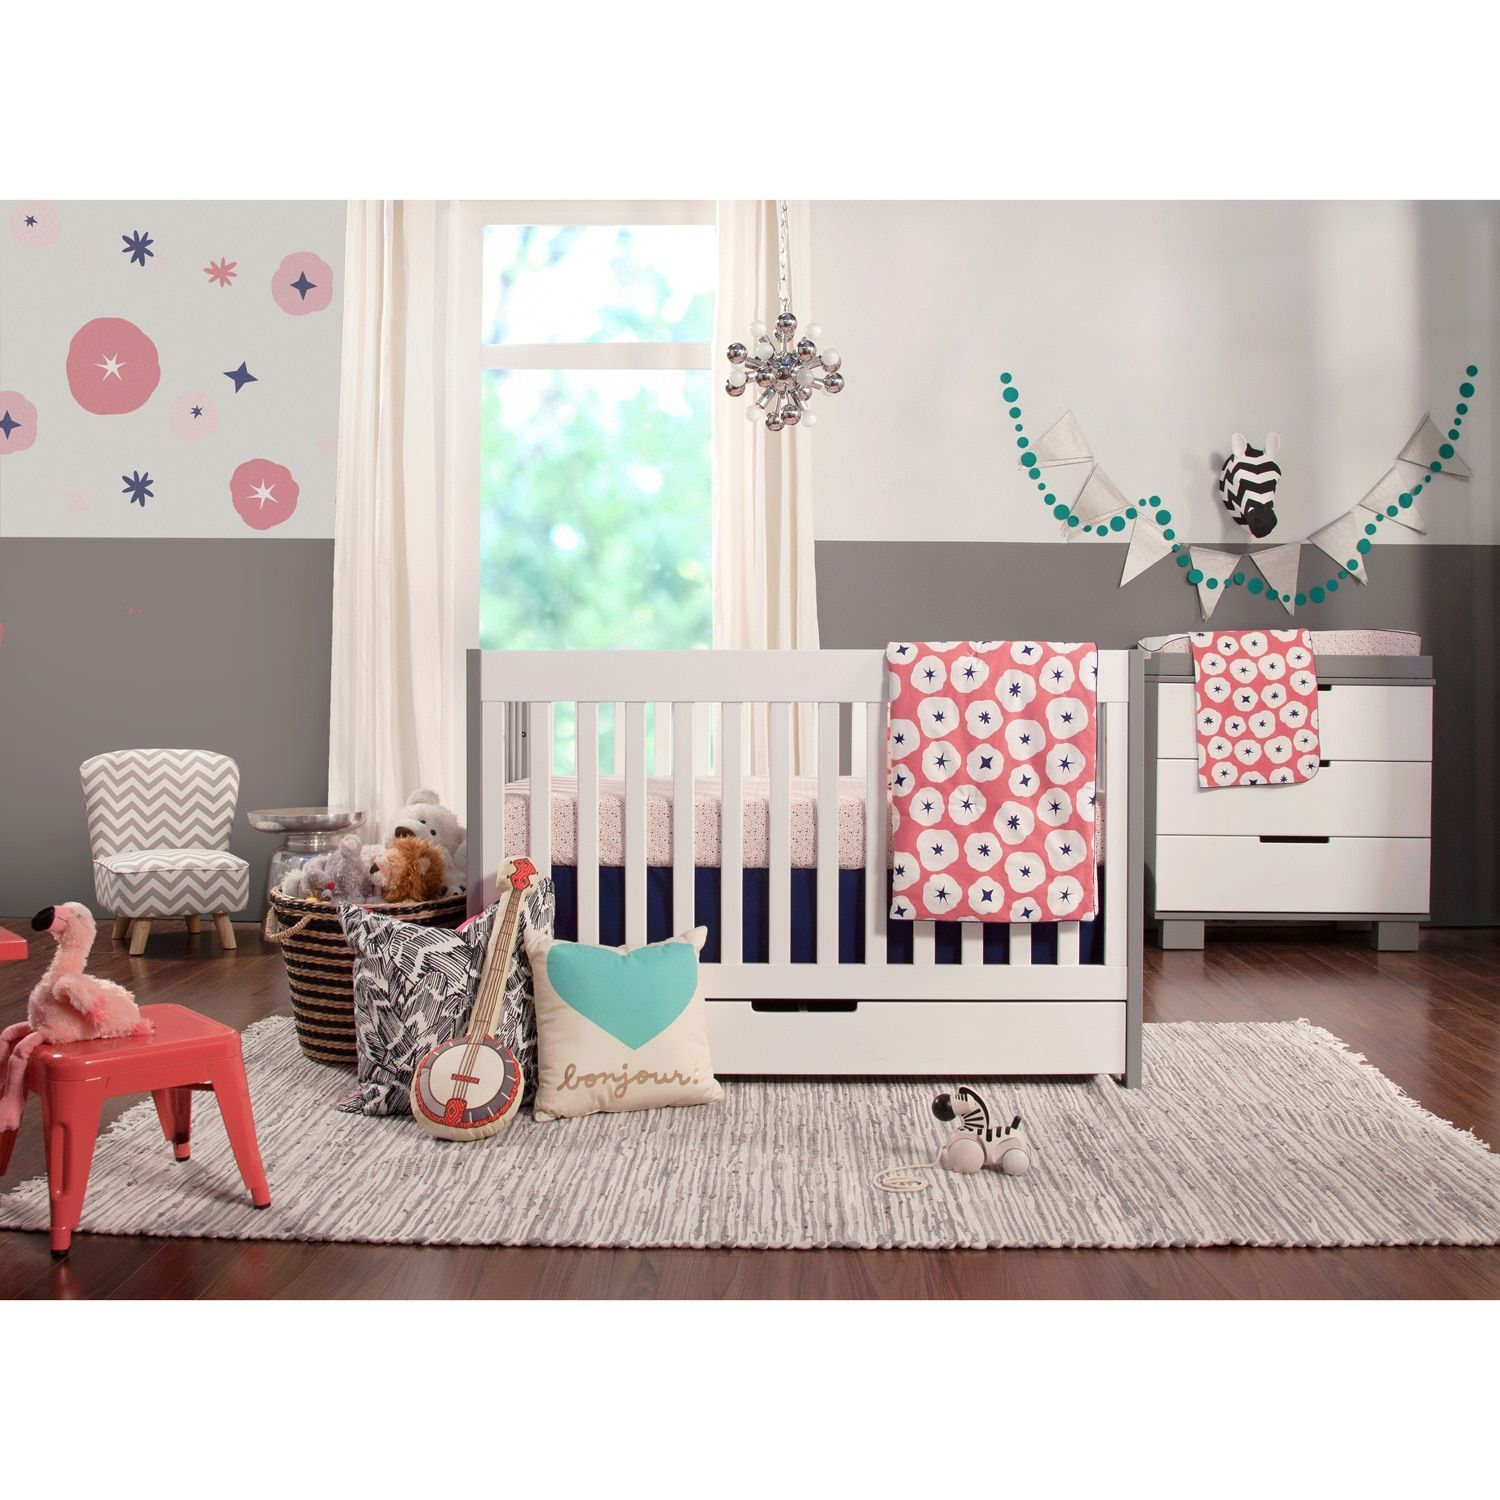 Babyletto Mercer 3 In 1 Convertible Crib With Toddler Bed Conversion Kit Espresso